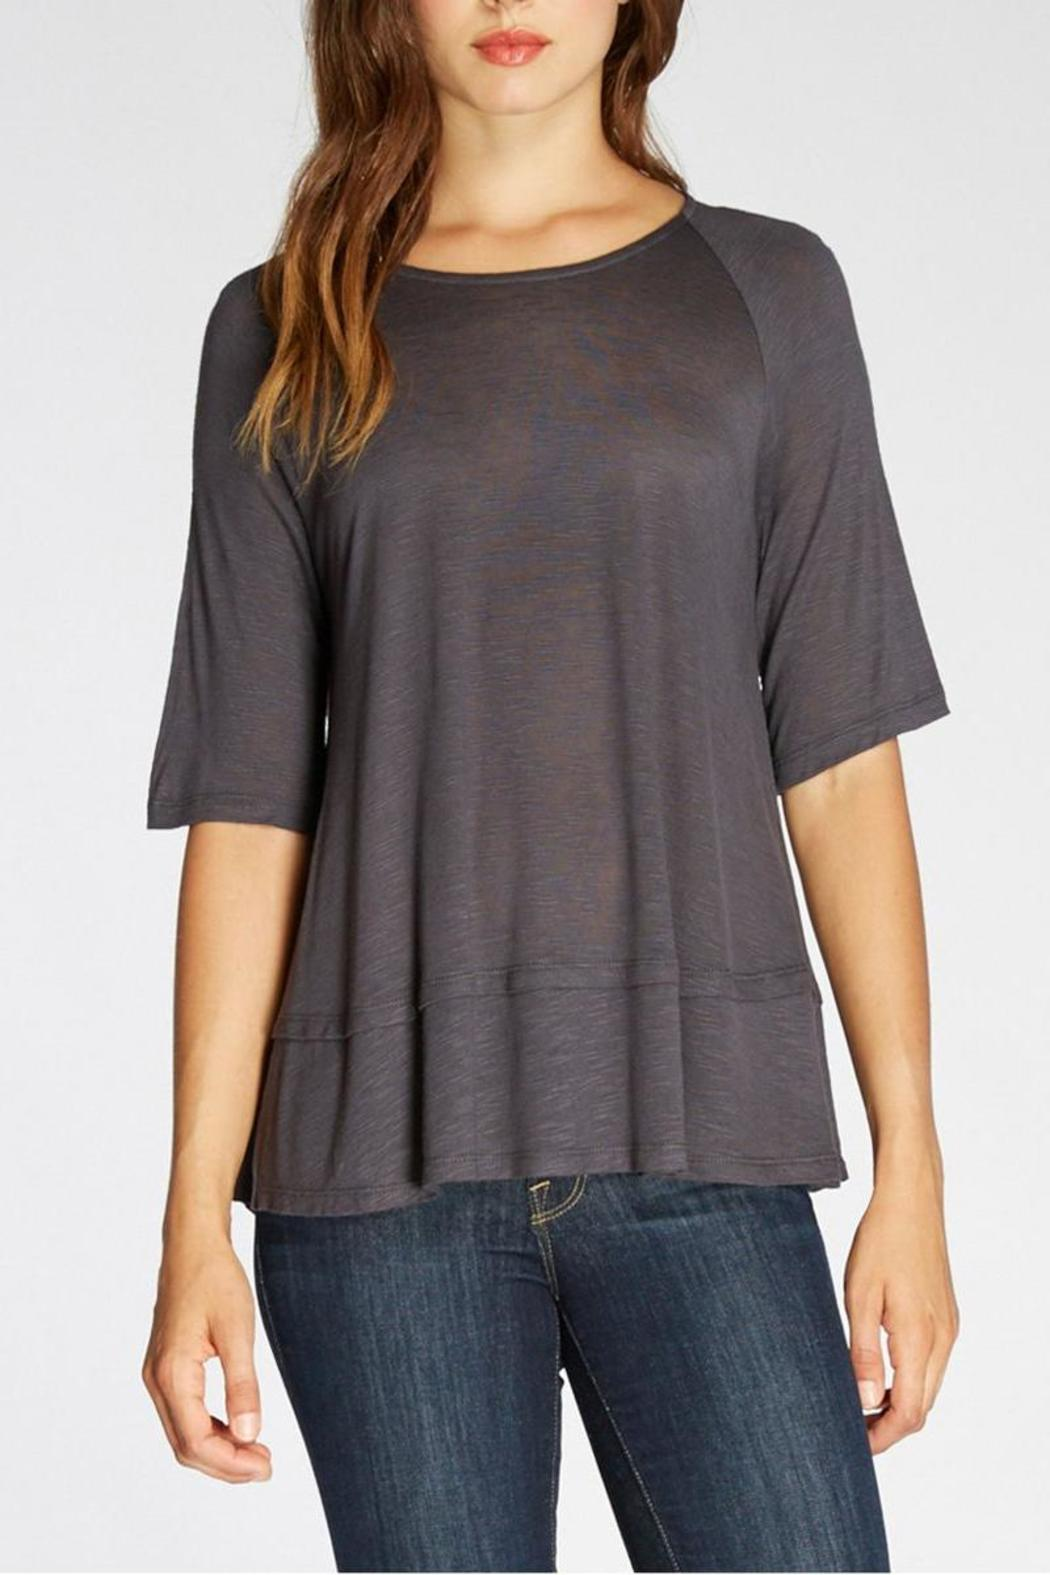 The Dressing Room Relaxed Fit Top - Main Image